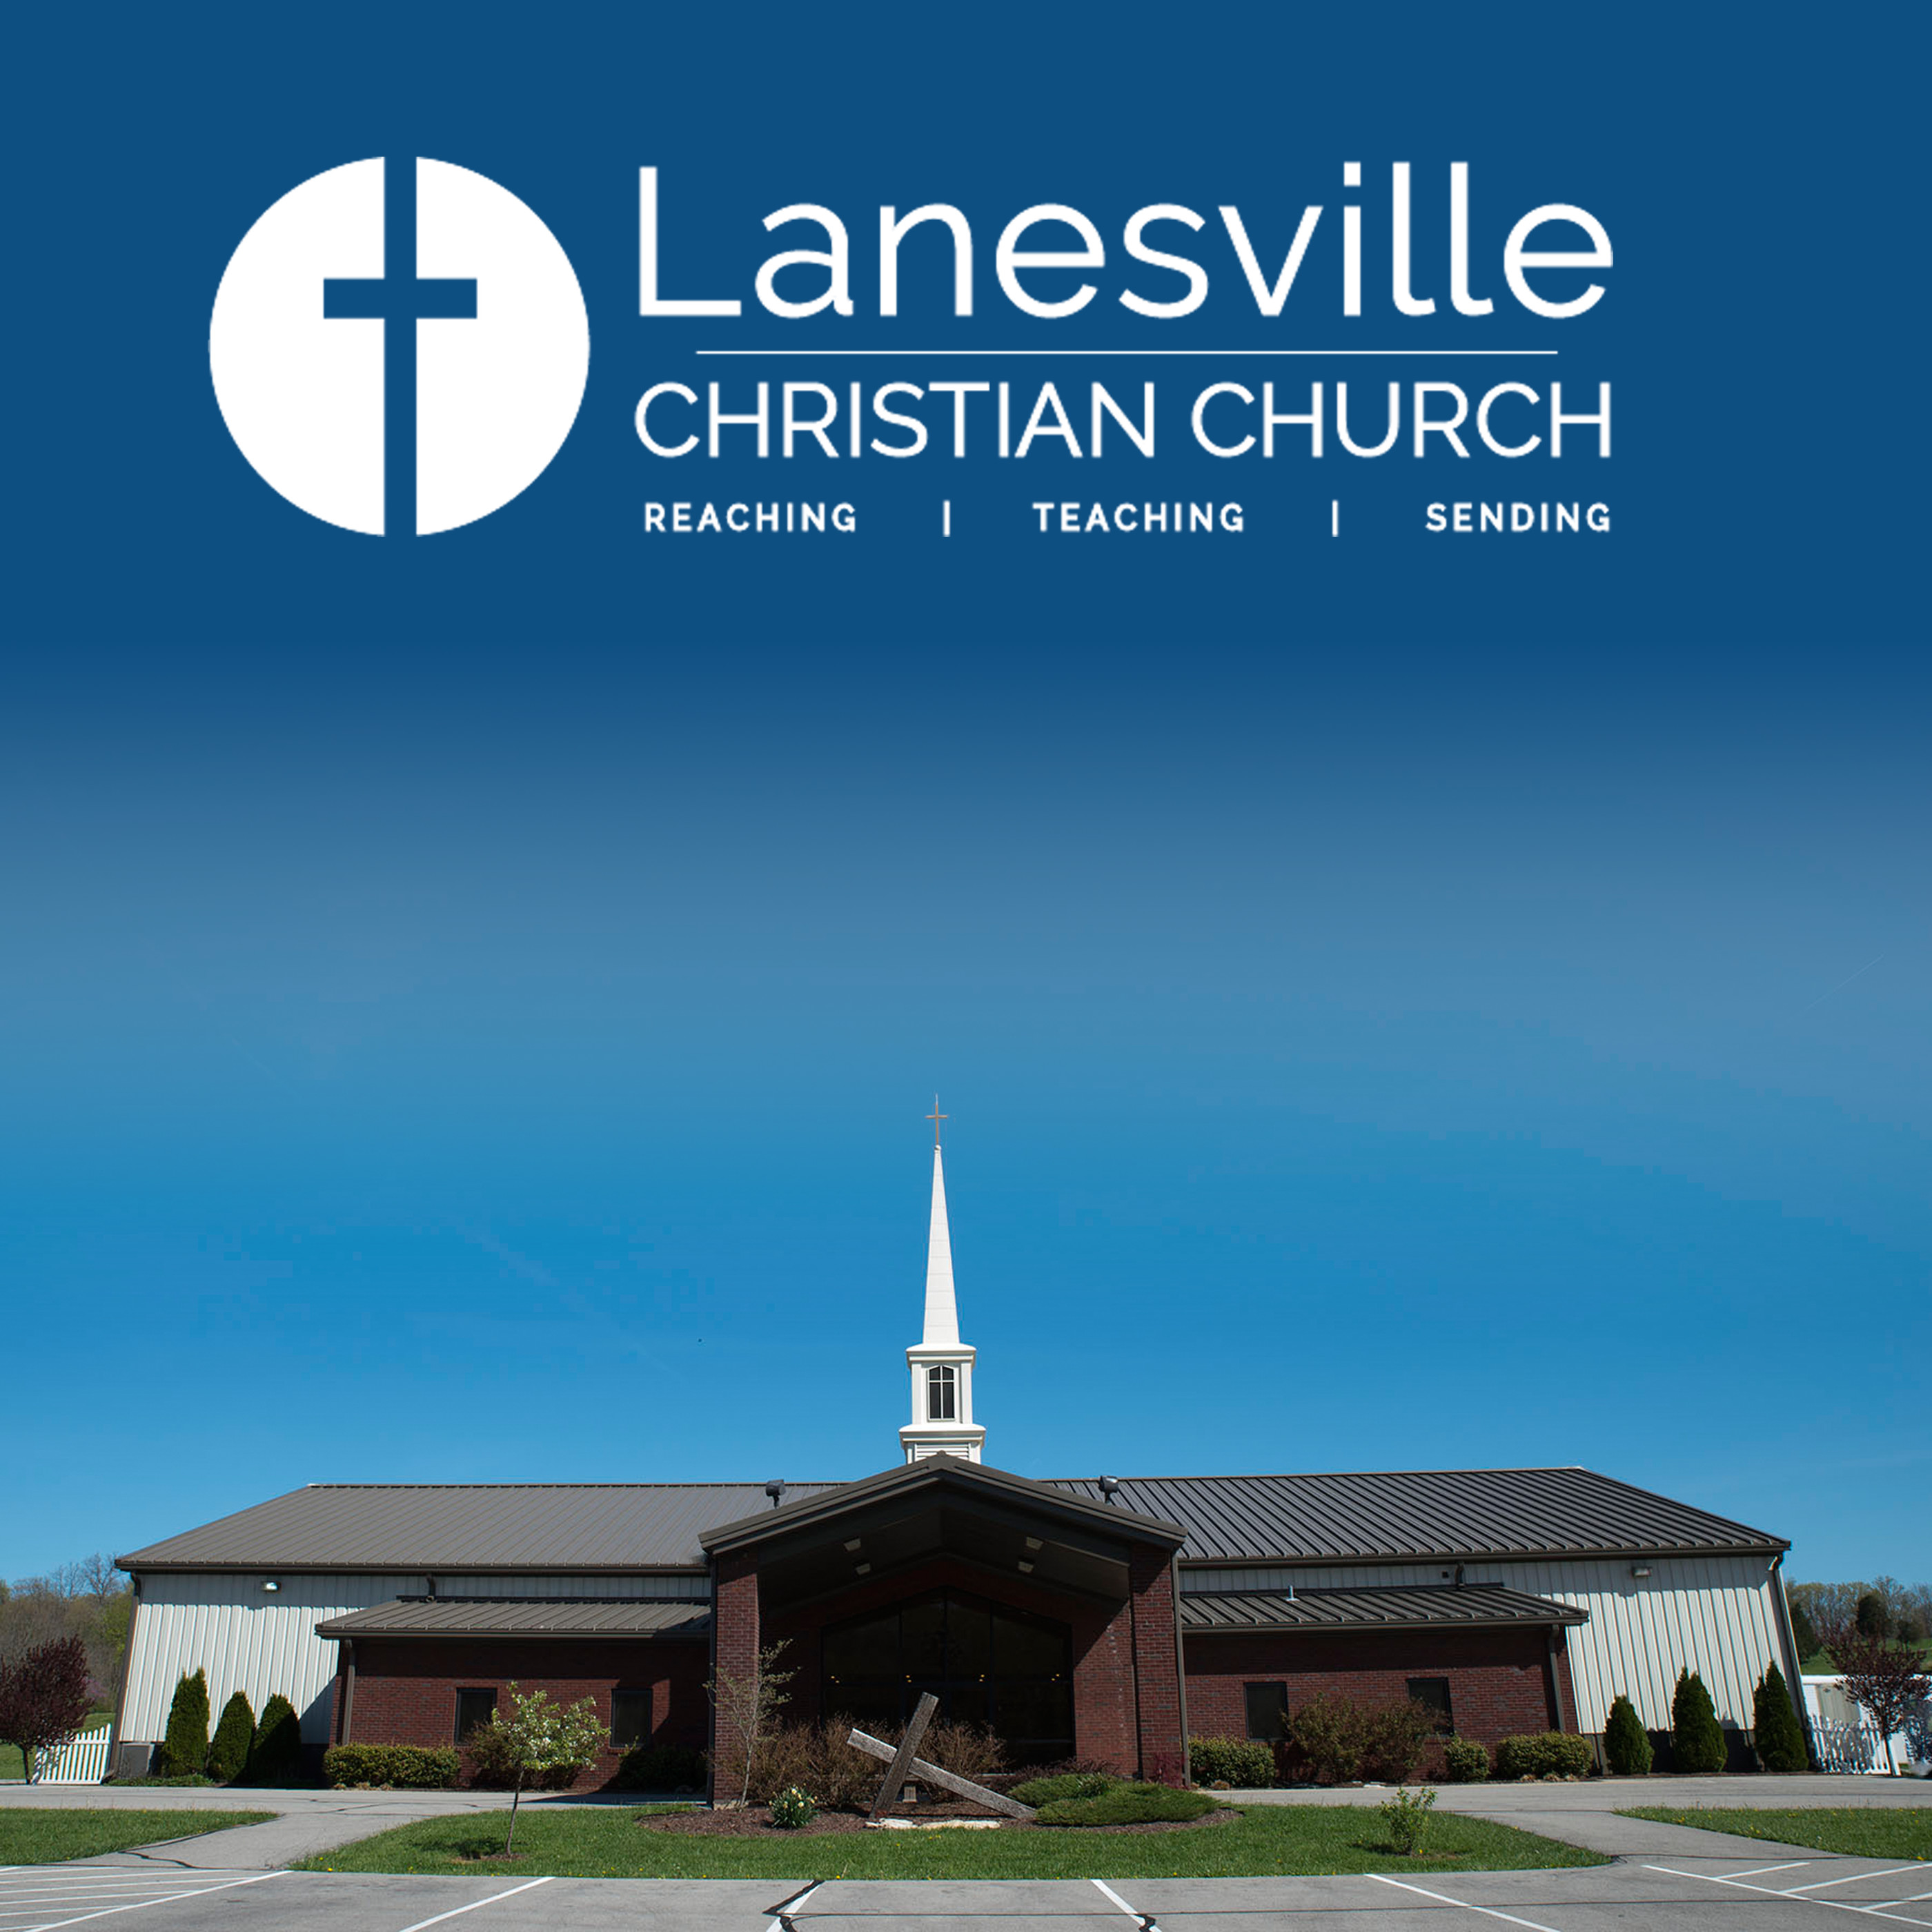 Lanesville Christian Church